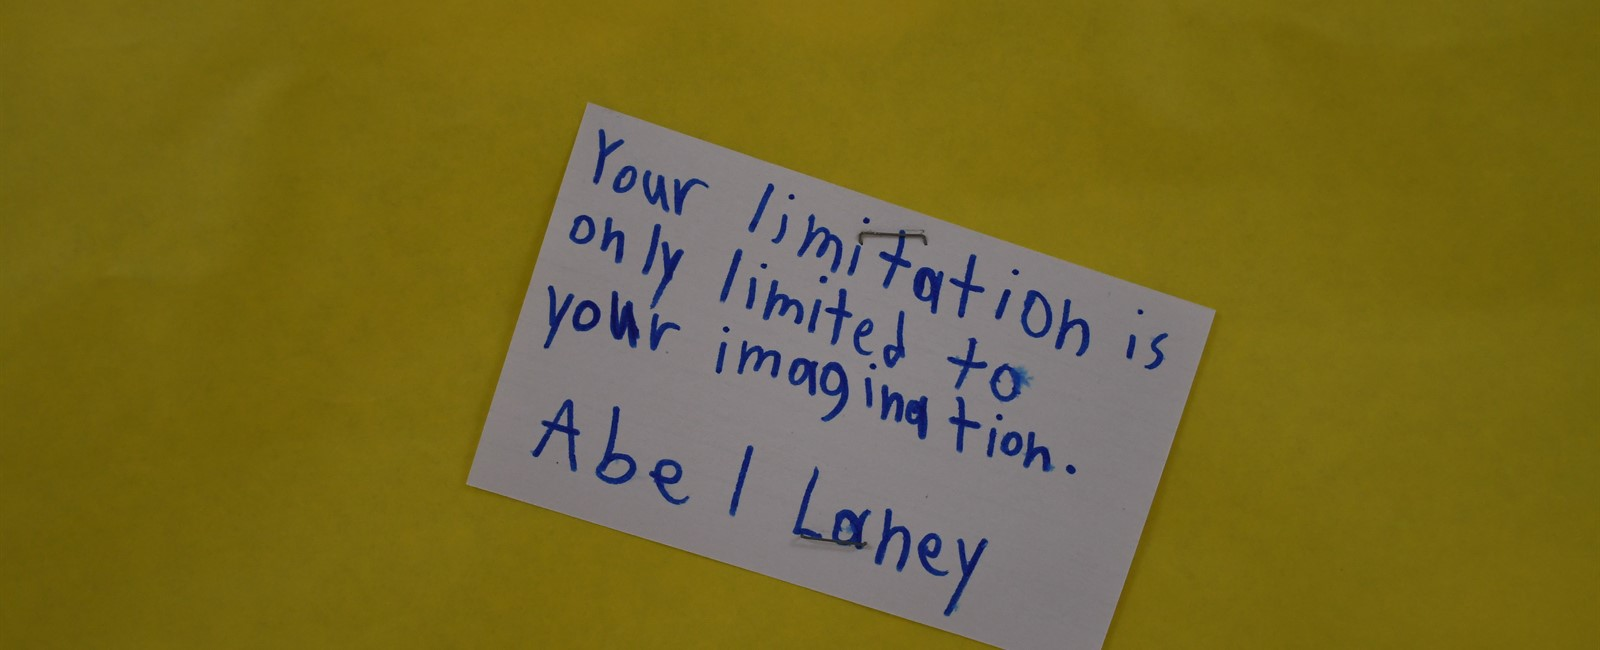 Your limitation is only limited to your imagination. Abel Laney